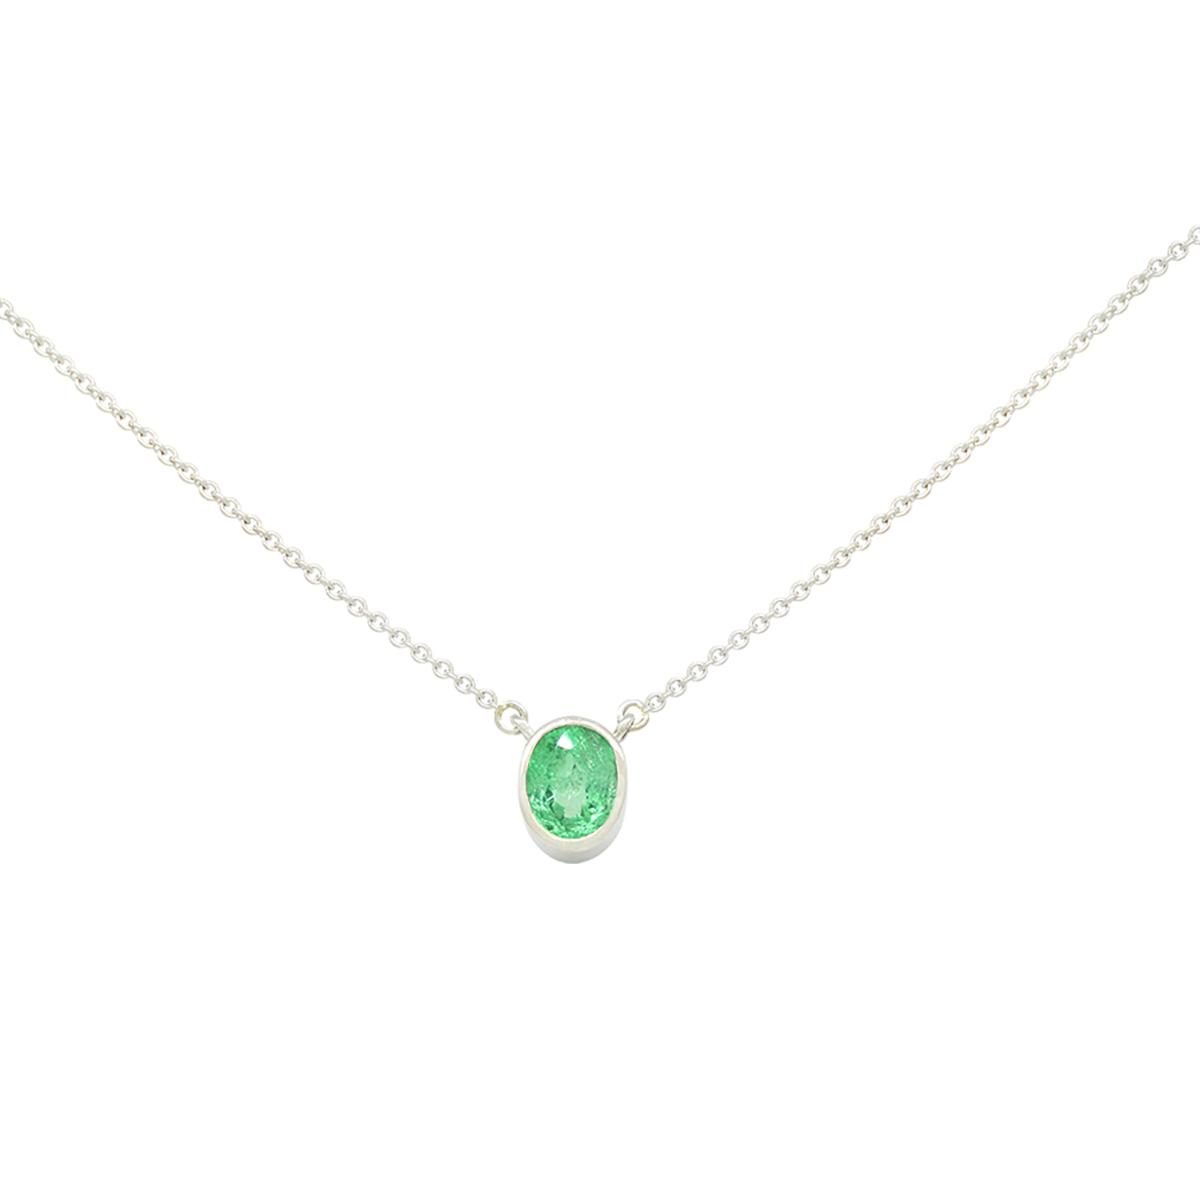 small-bezel-setting-solitaire-emerald-necklace-with-oval-shape-natural-emerald